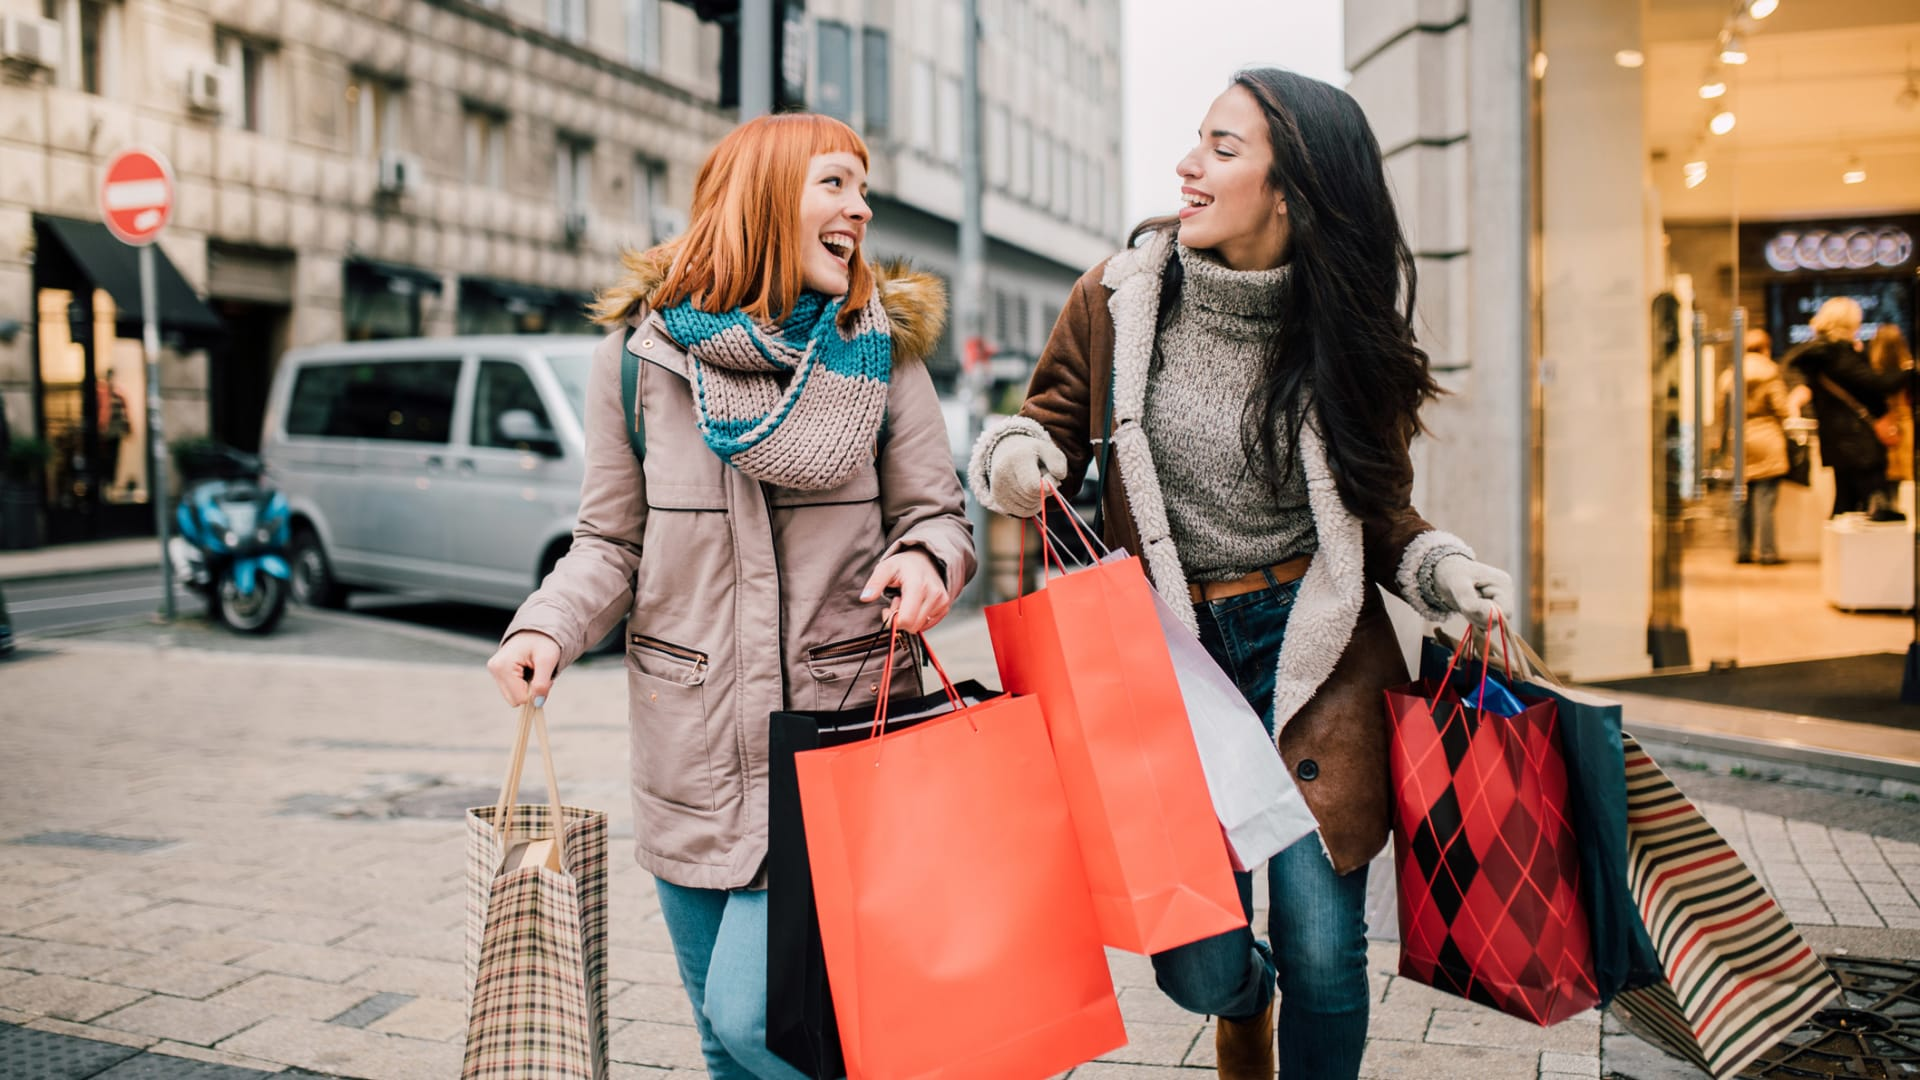 3 Predictions for the 2021 Holiday Season (and How to Make It Your Best Yet)